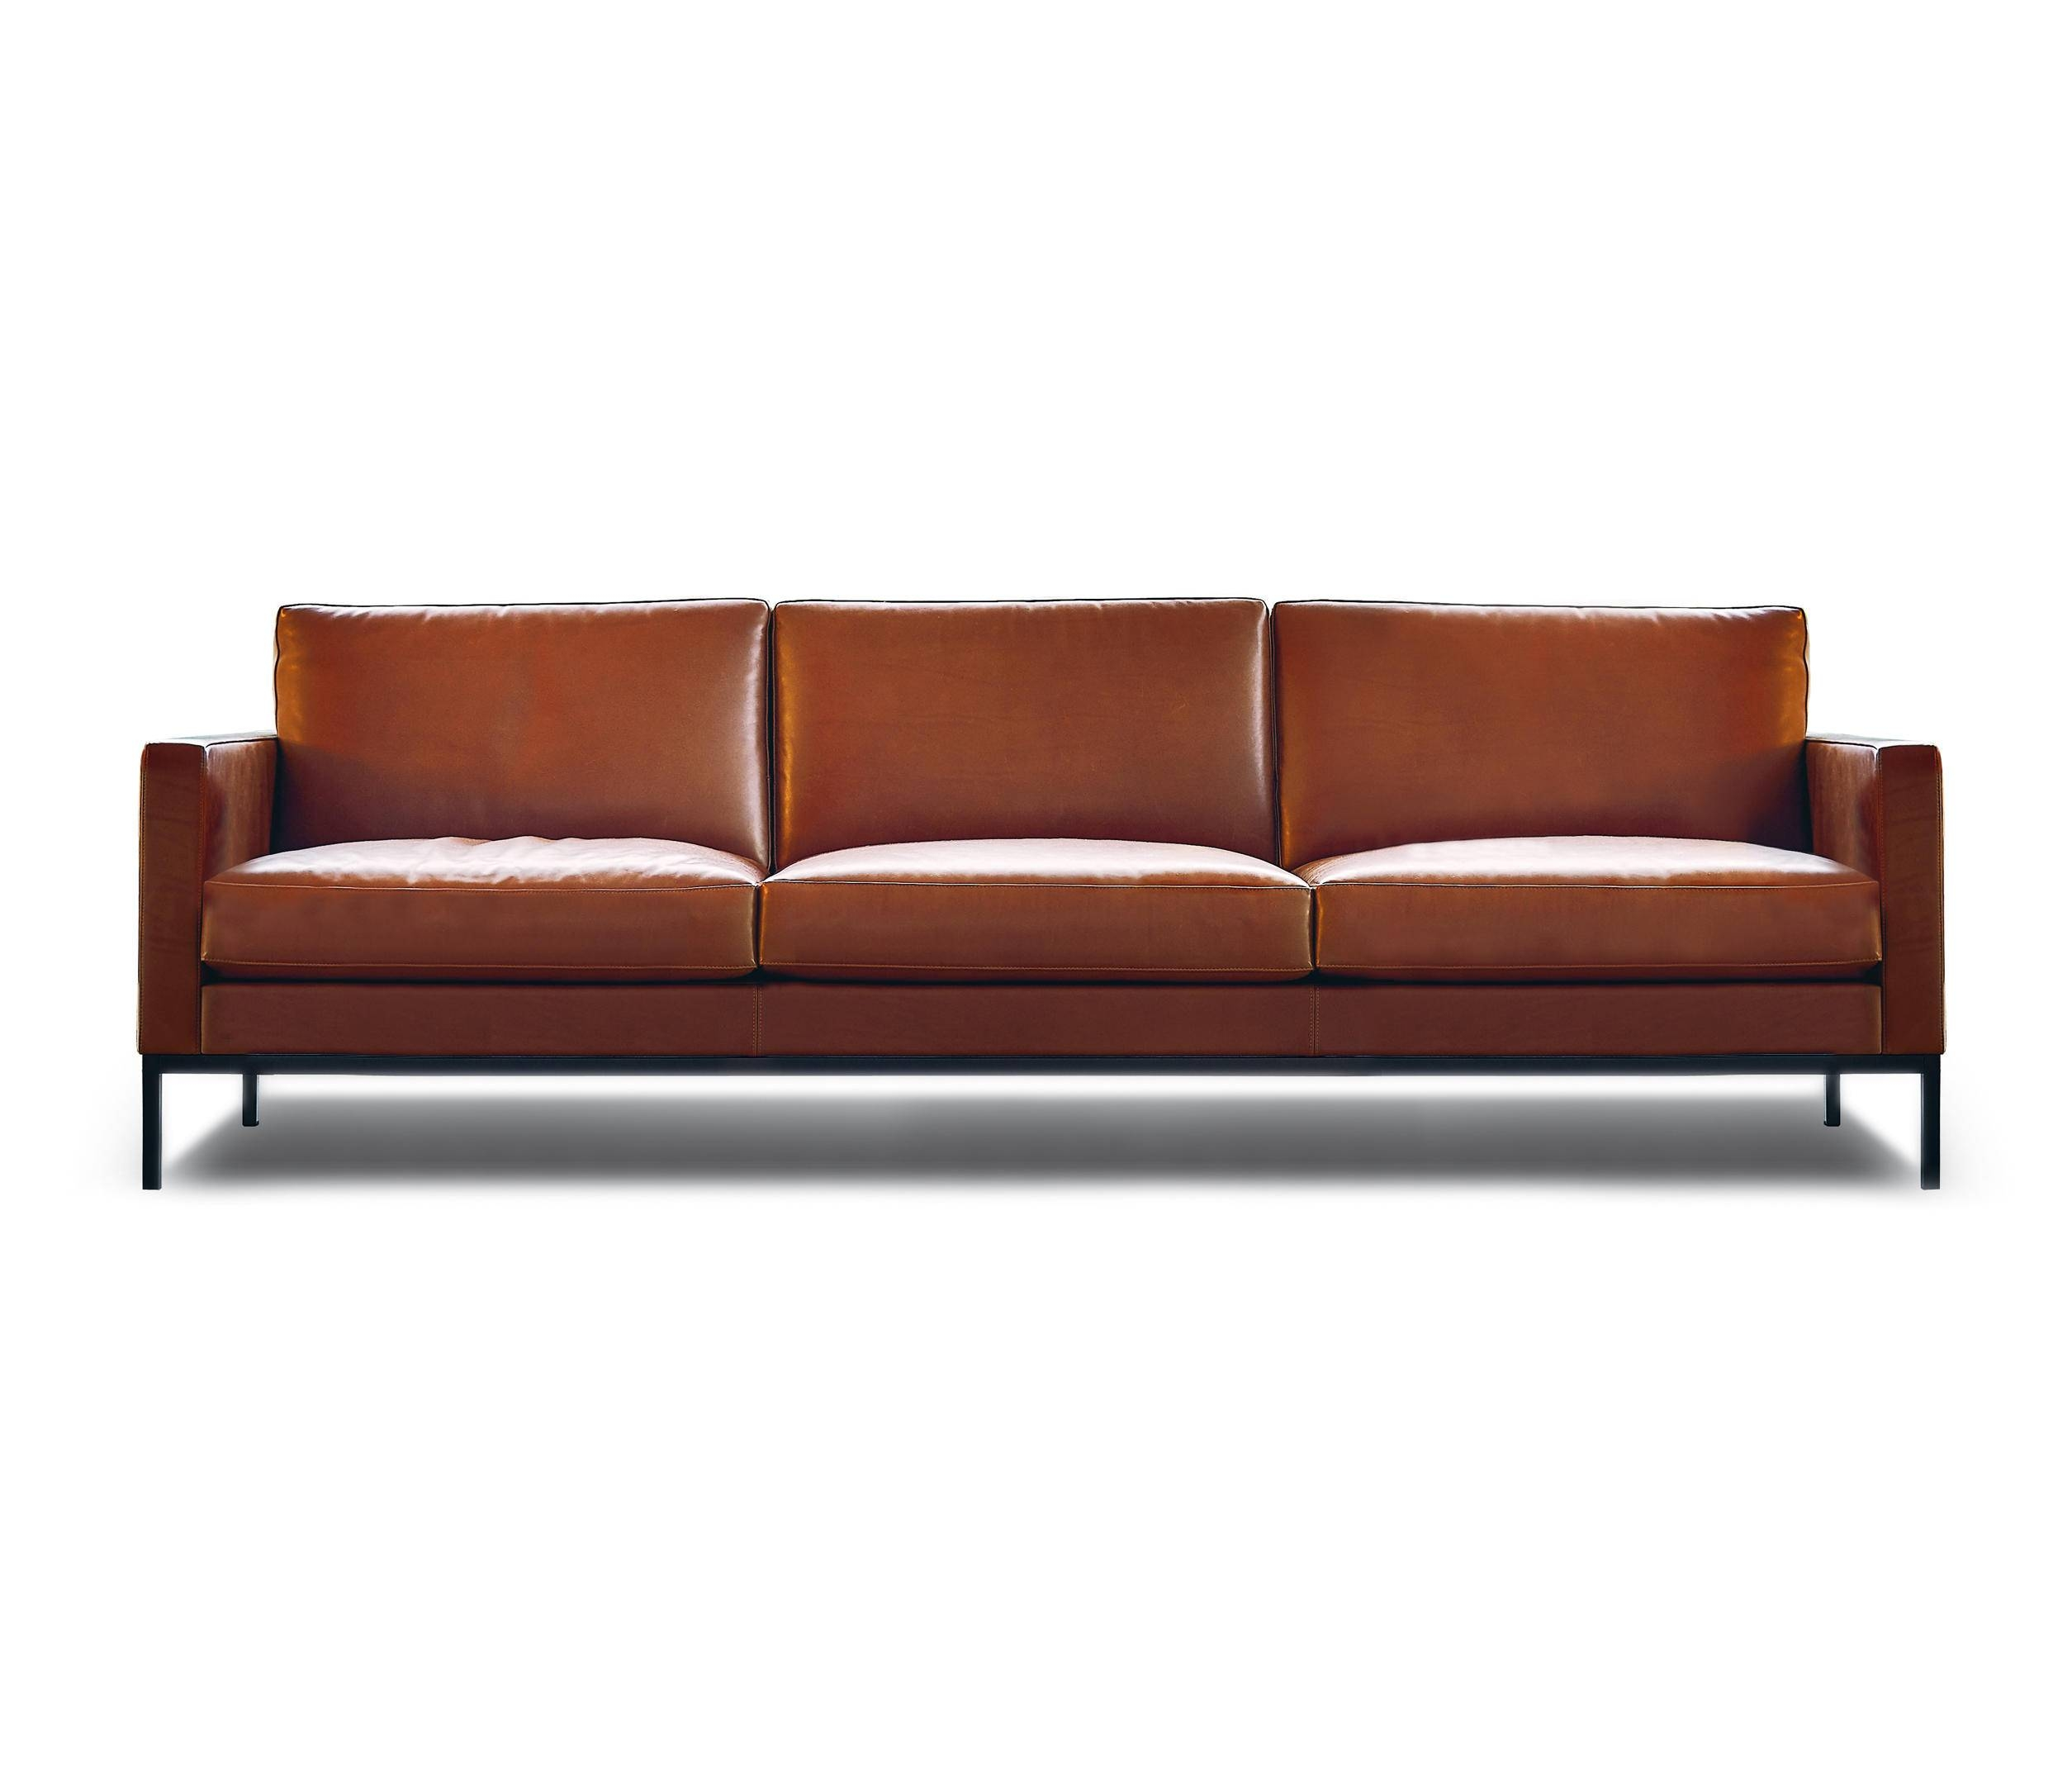 Florence Knoll Lounge 3 Seat Sofa - Lounge Sofas From Knoll in Florence Large Sofas (Image 7 of 30)